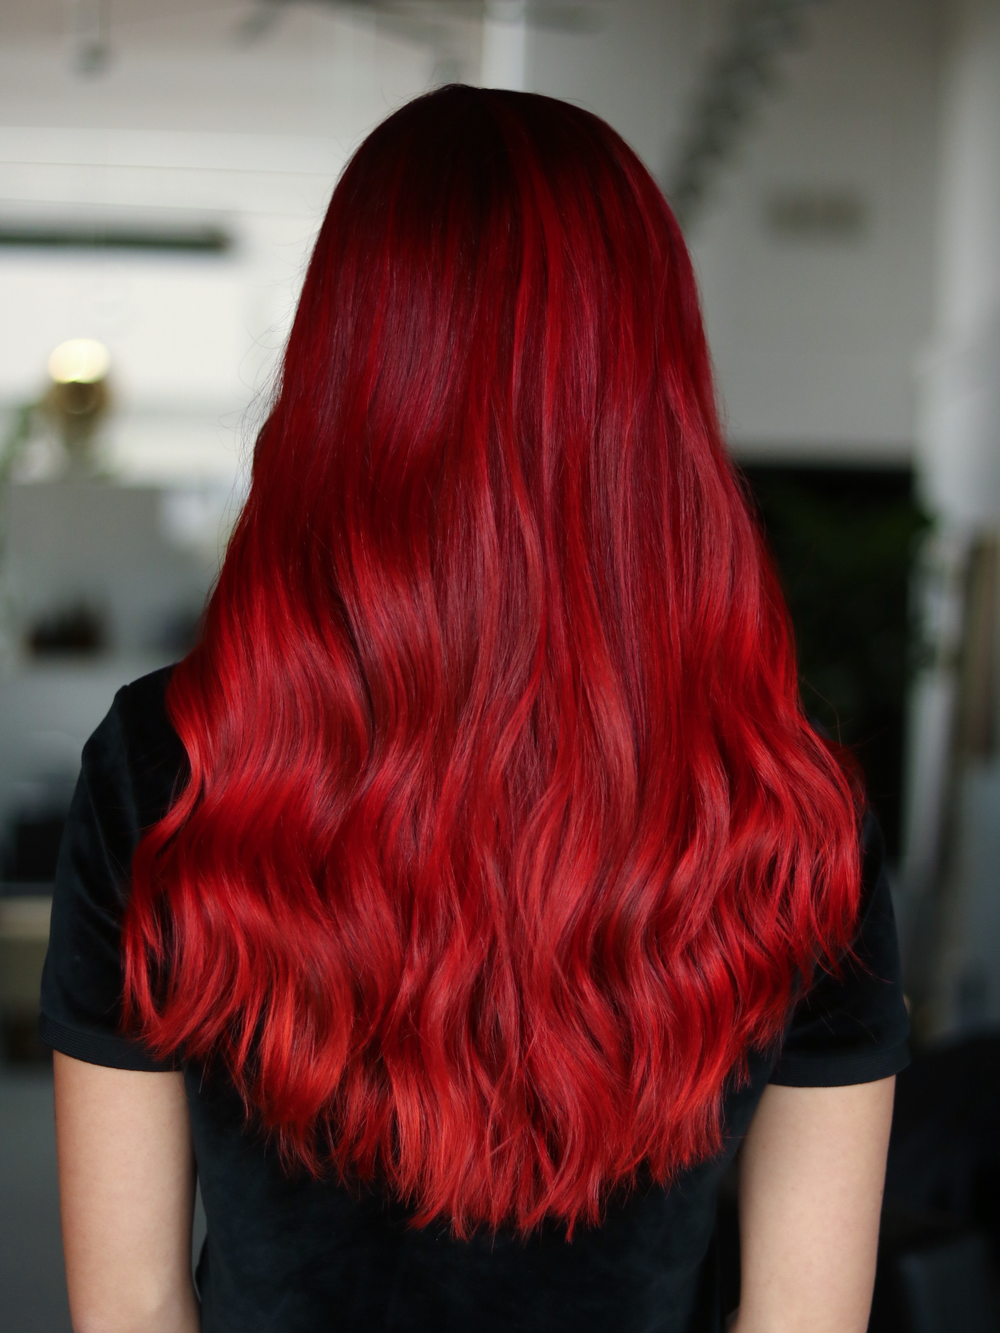 Hair color by Contance Robbins.